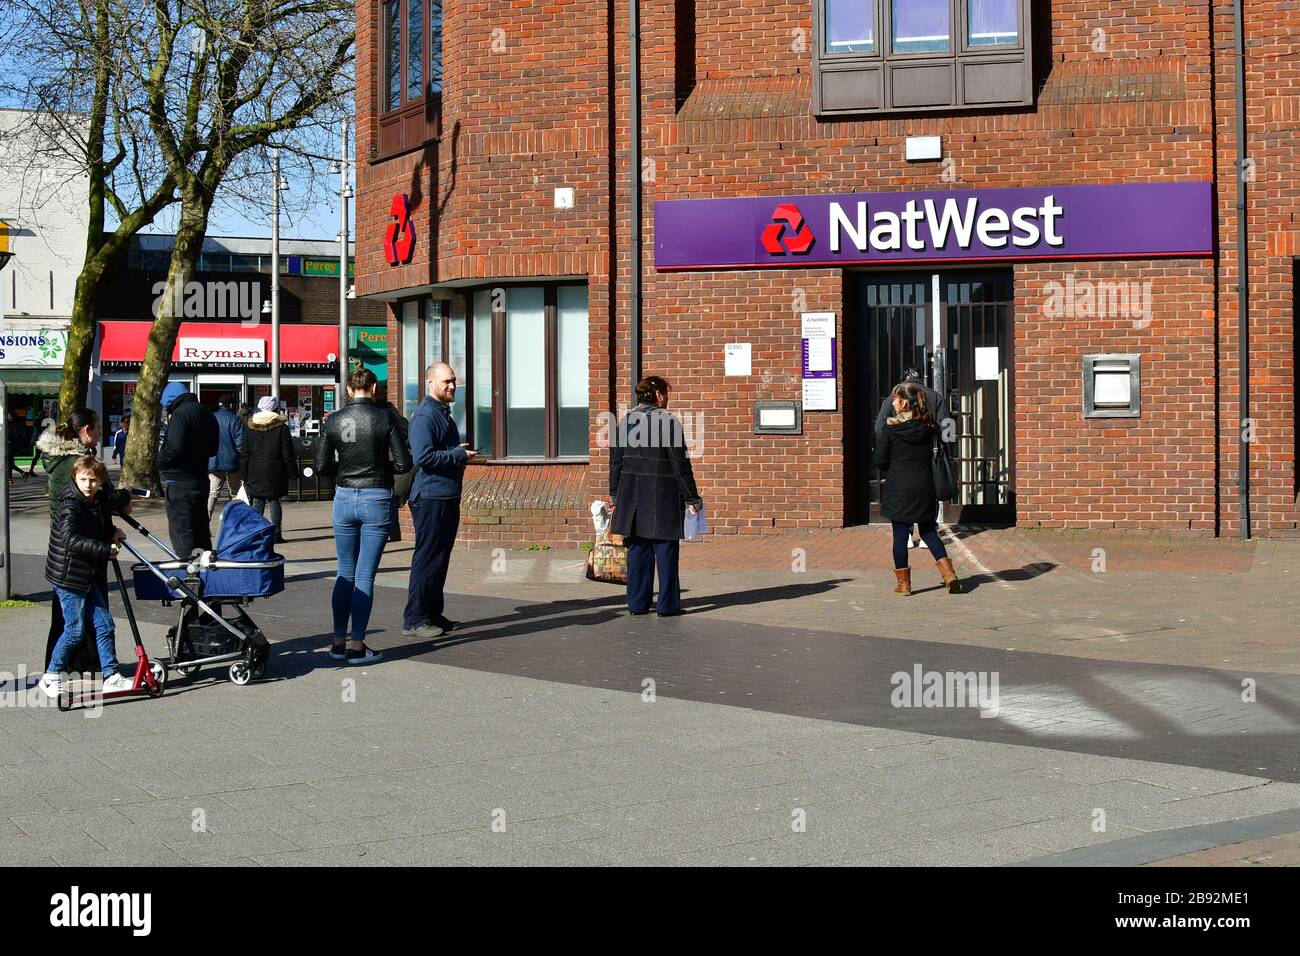 London, UK. 23 Mar, 2020. Coronavirus threat - People queue outside NatWest Bank only allow one at a time to entry bank, on 23 March in Walthamstow, London, UK. Credit: Picture Capital/Alamy Live News Stock Photo